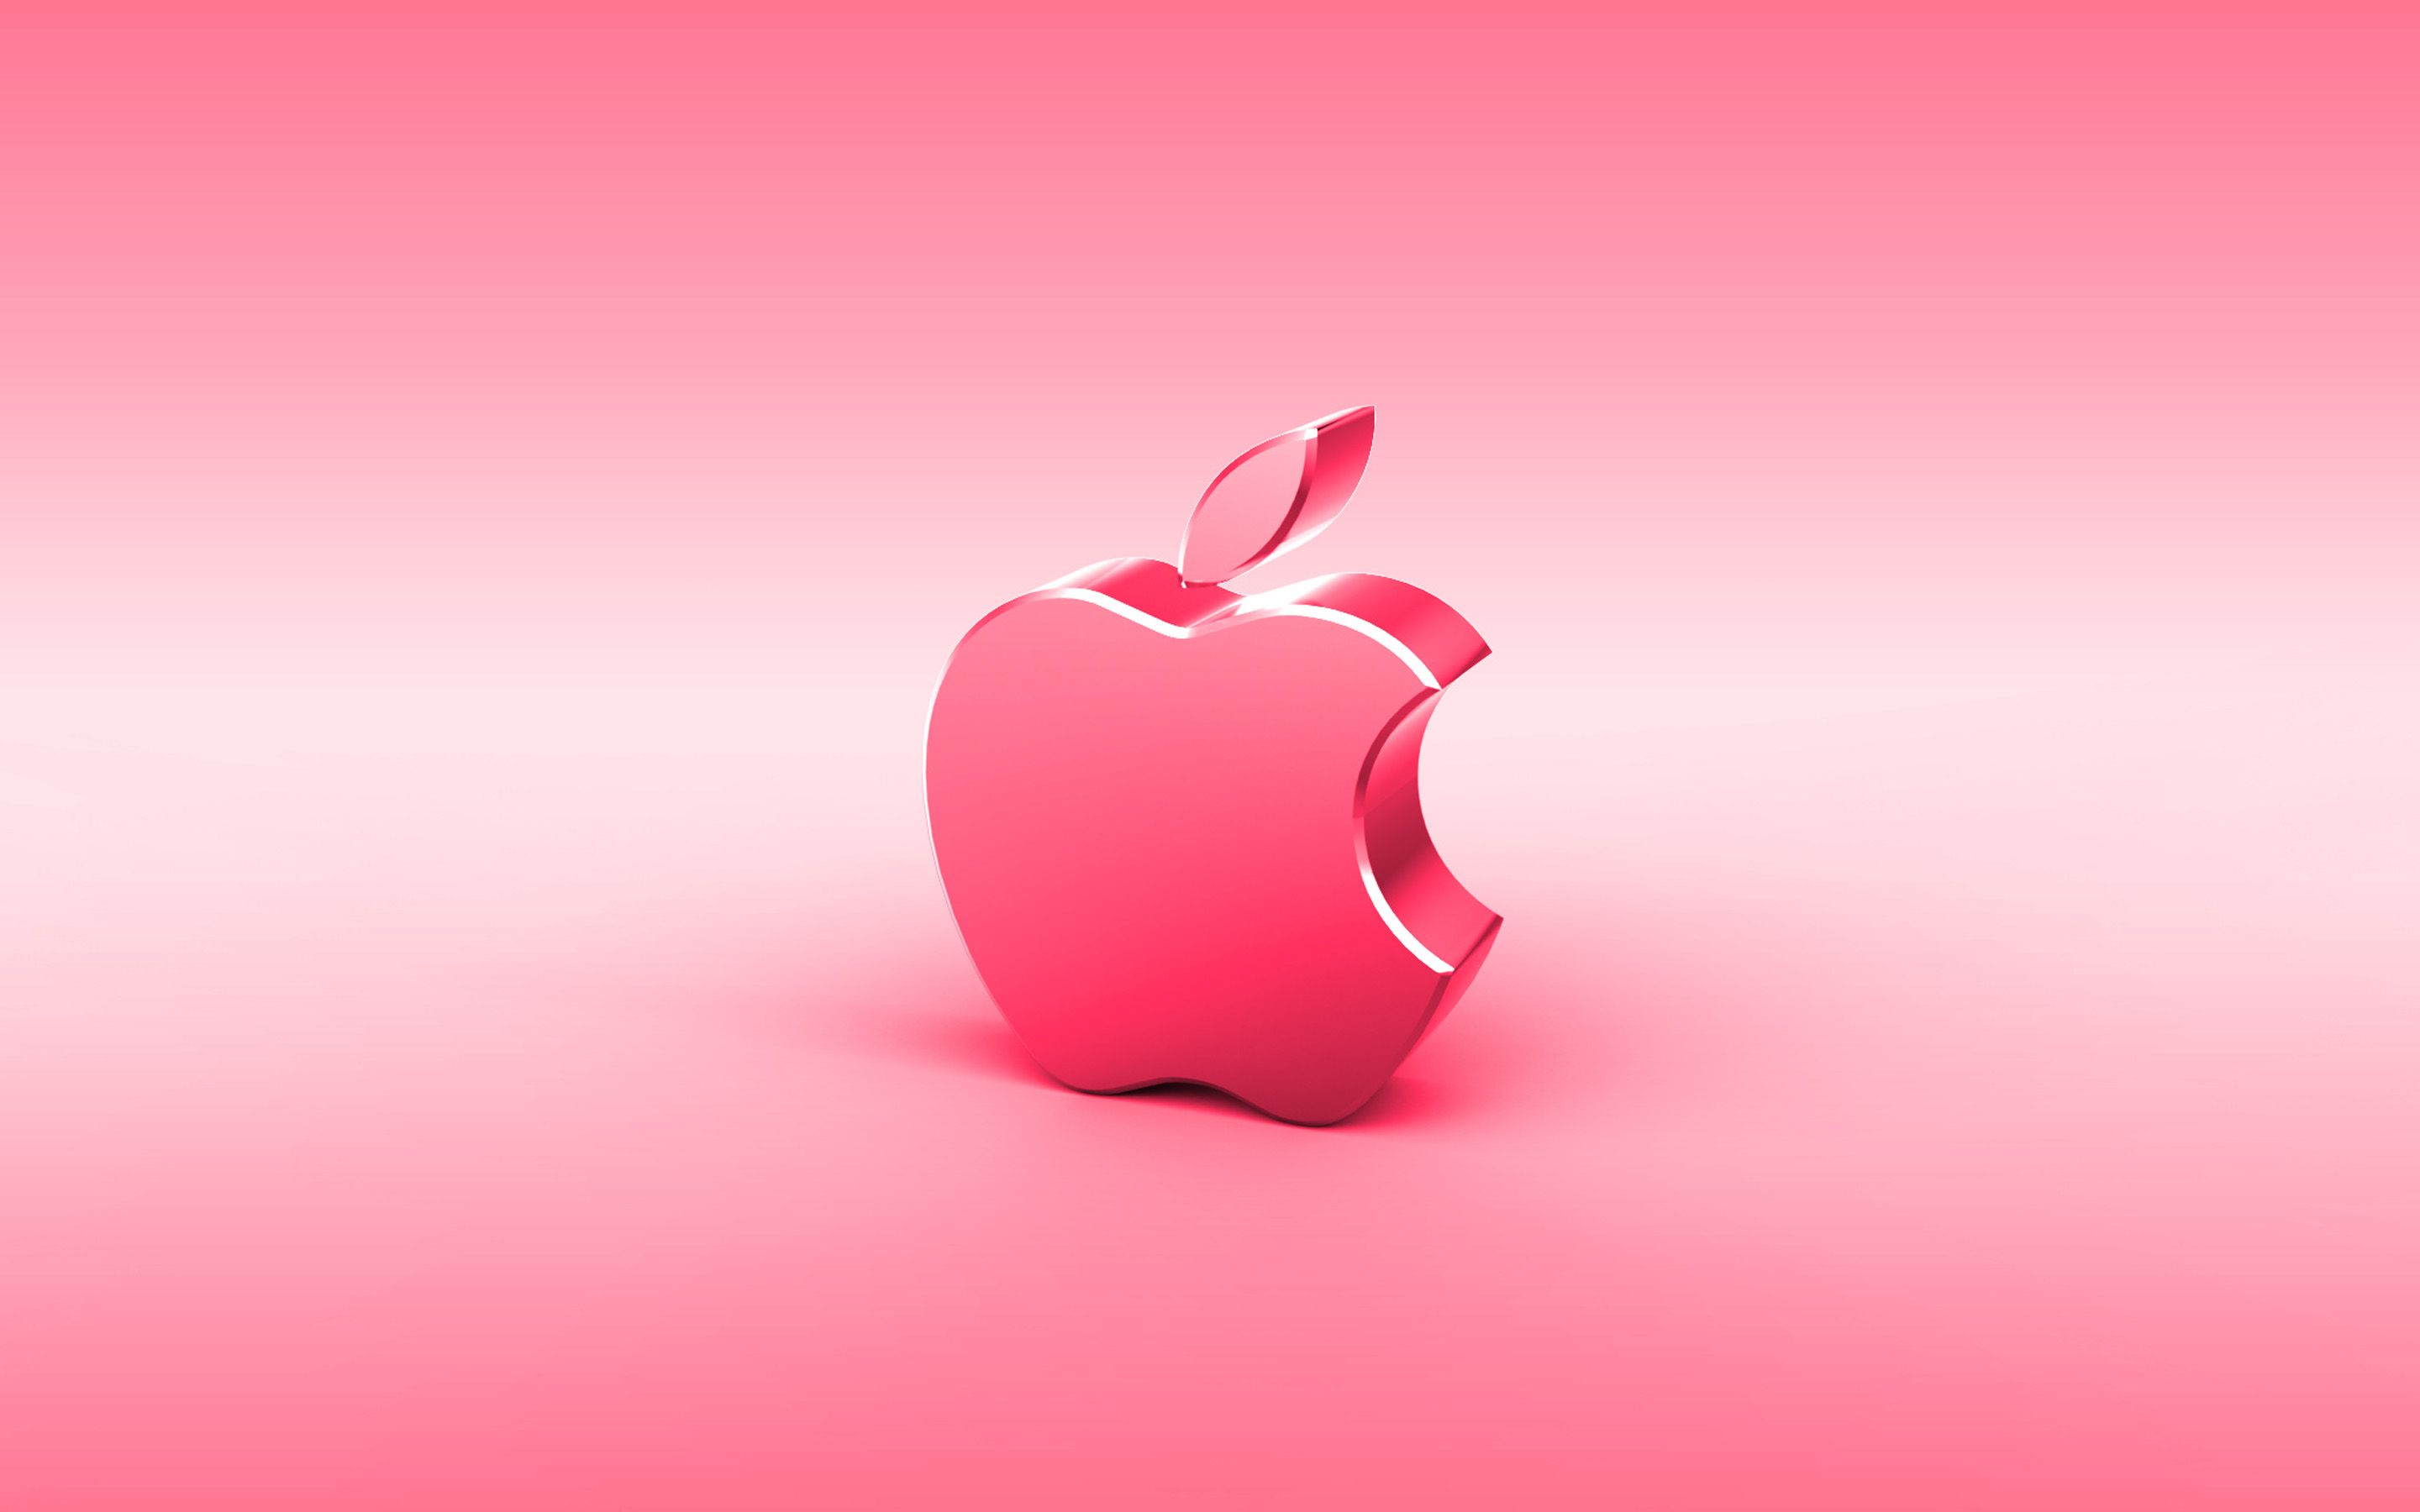 Pink Macbook Wallpapers Top Free Pink Macbook Backgrounds Wallpaperaccess Do you remember the days of hanging up jonas brothers and justin timberlake posters all over your room? pink macbook wallpapers top free pink